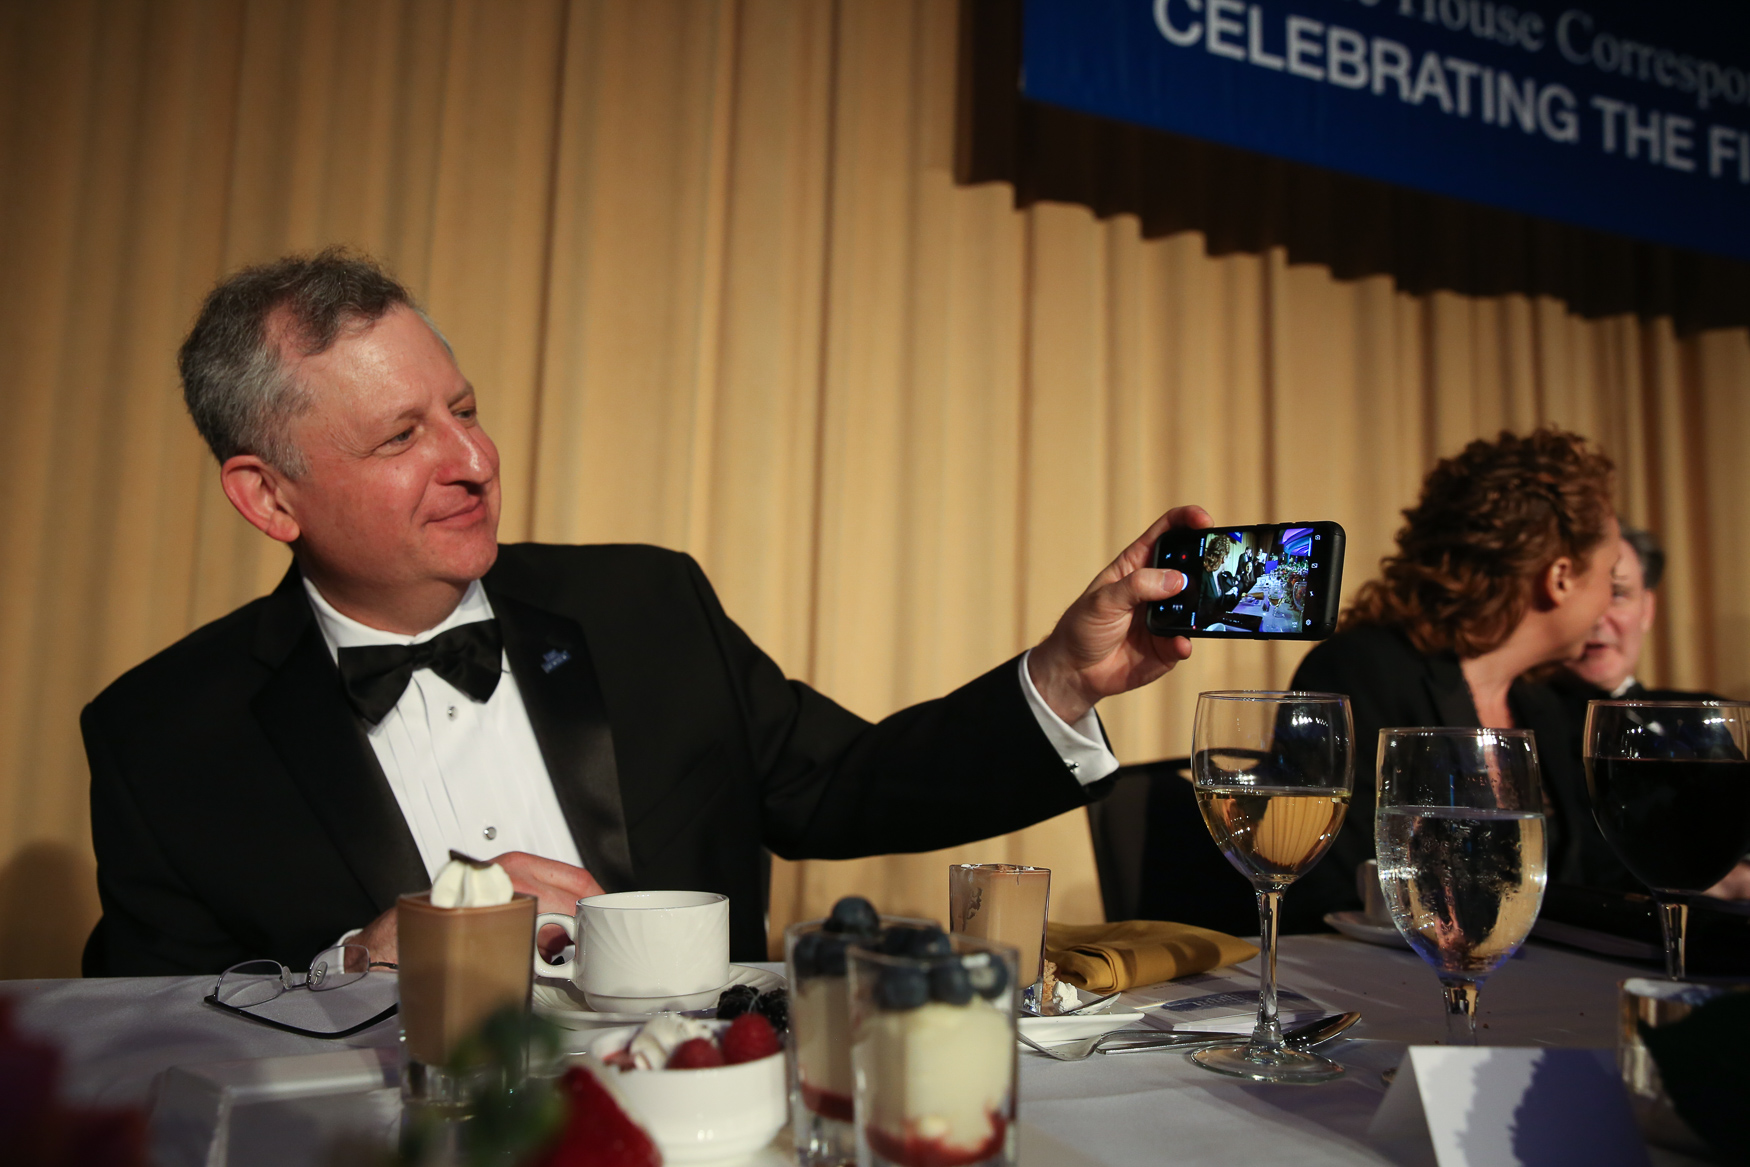 Todd J. Gillman , the Washington bureau chief of The Dallas Morning News, snaps a photo at the White House Correspondents' Dinner.{ }(Amanda Andrade-Rhoades/DC Refined)